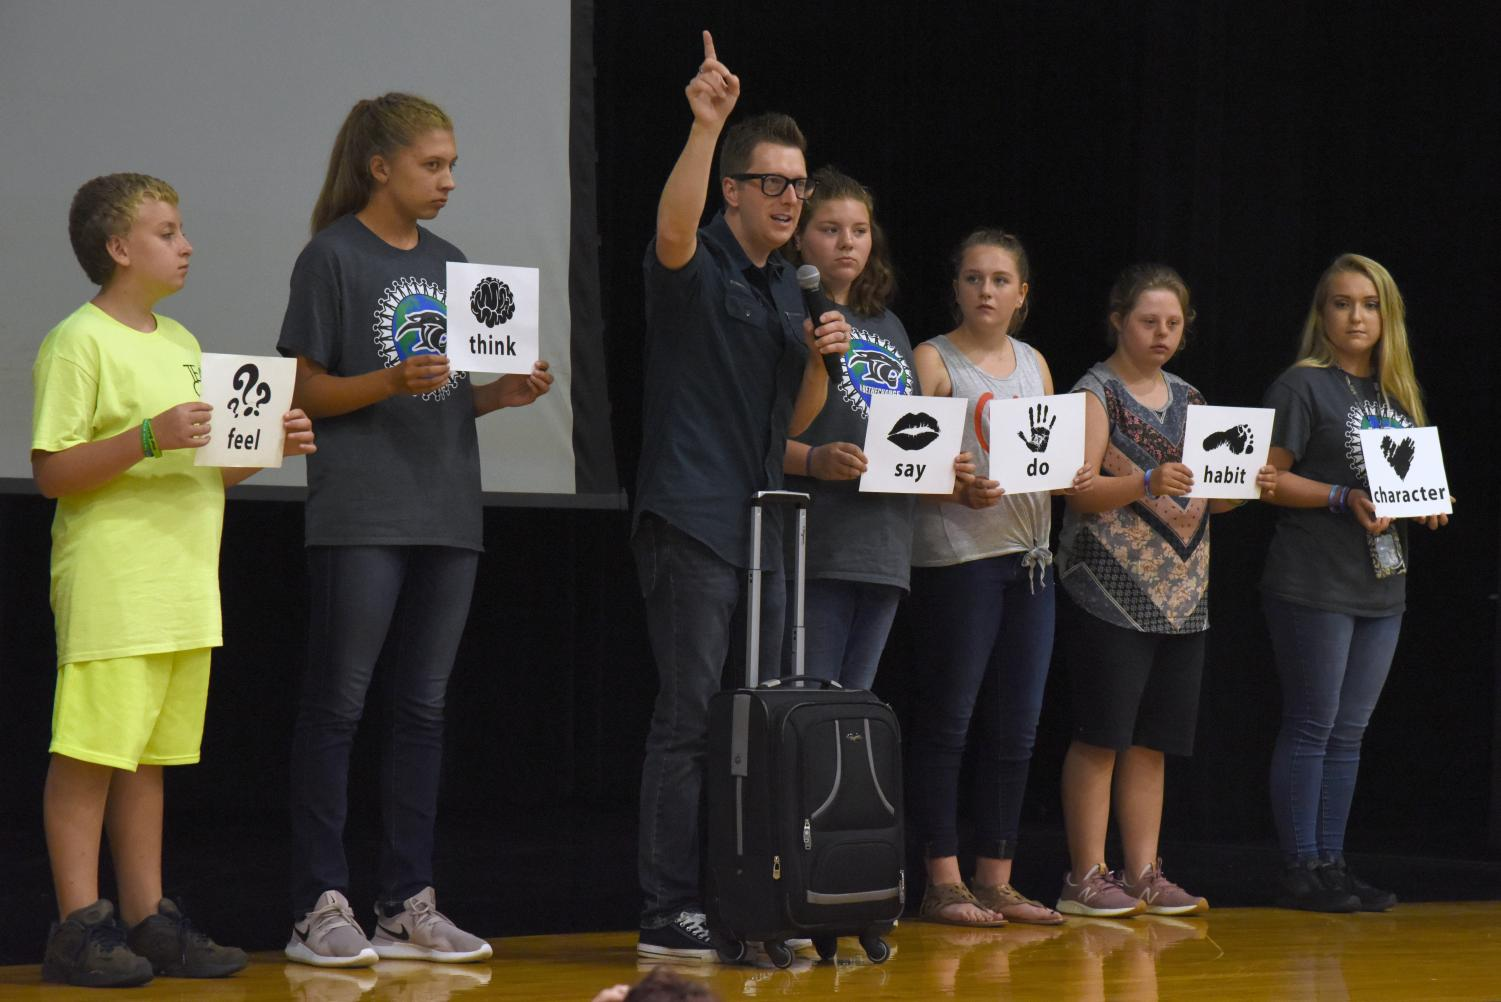 Tom Thelen demonstrates ways to combat bullying using the help of students.